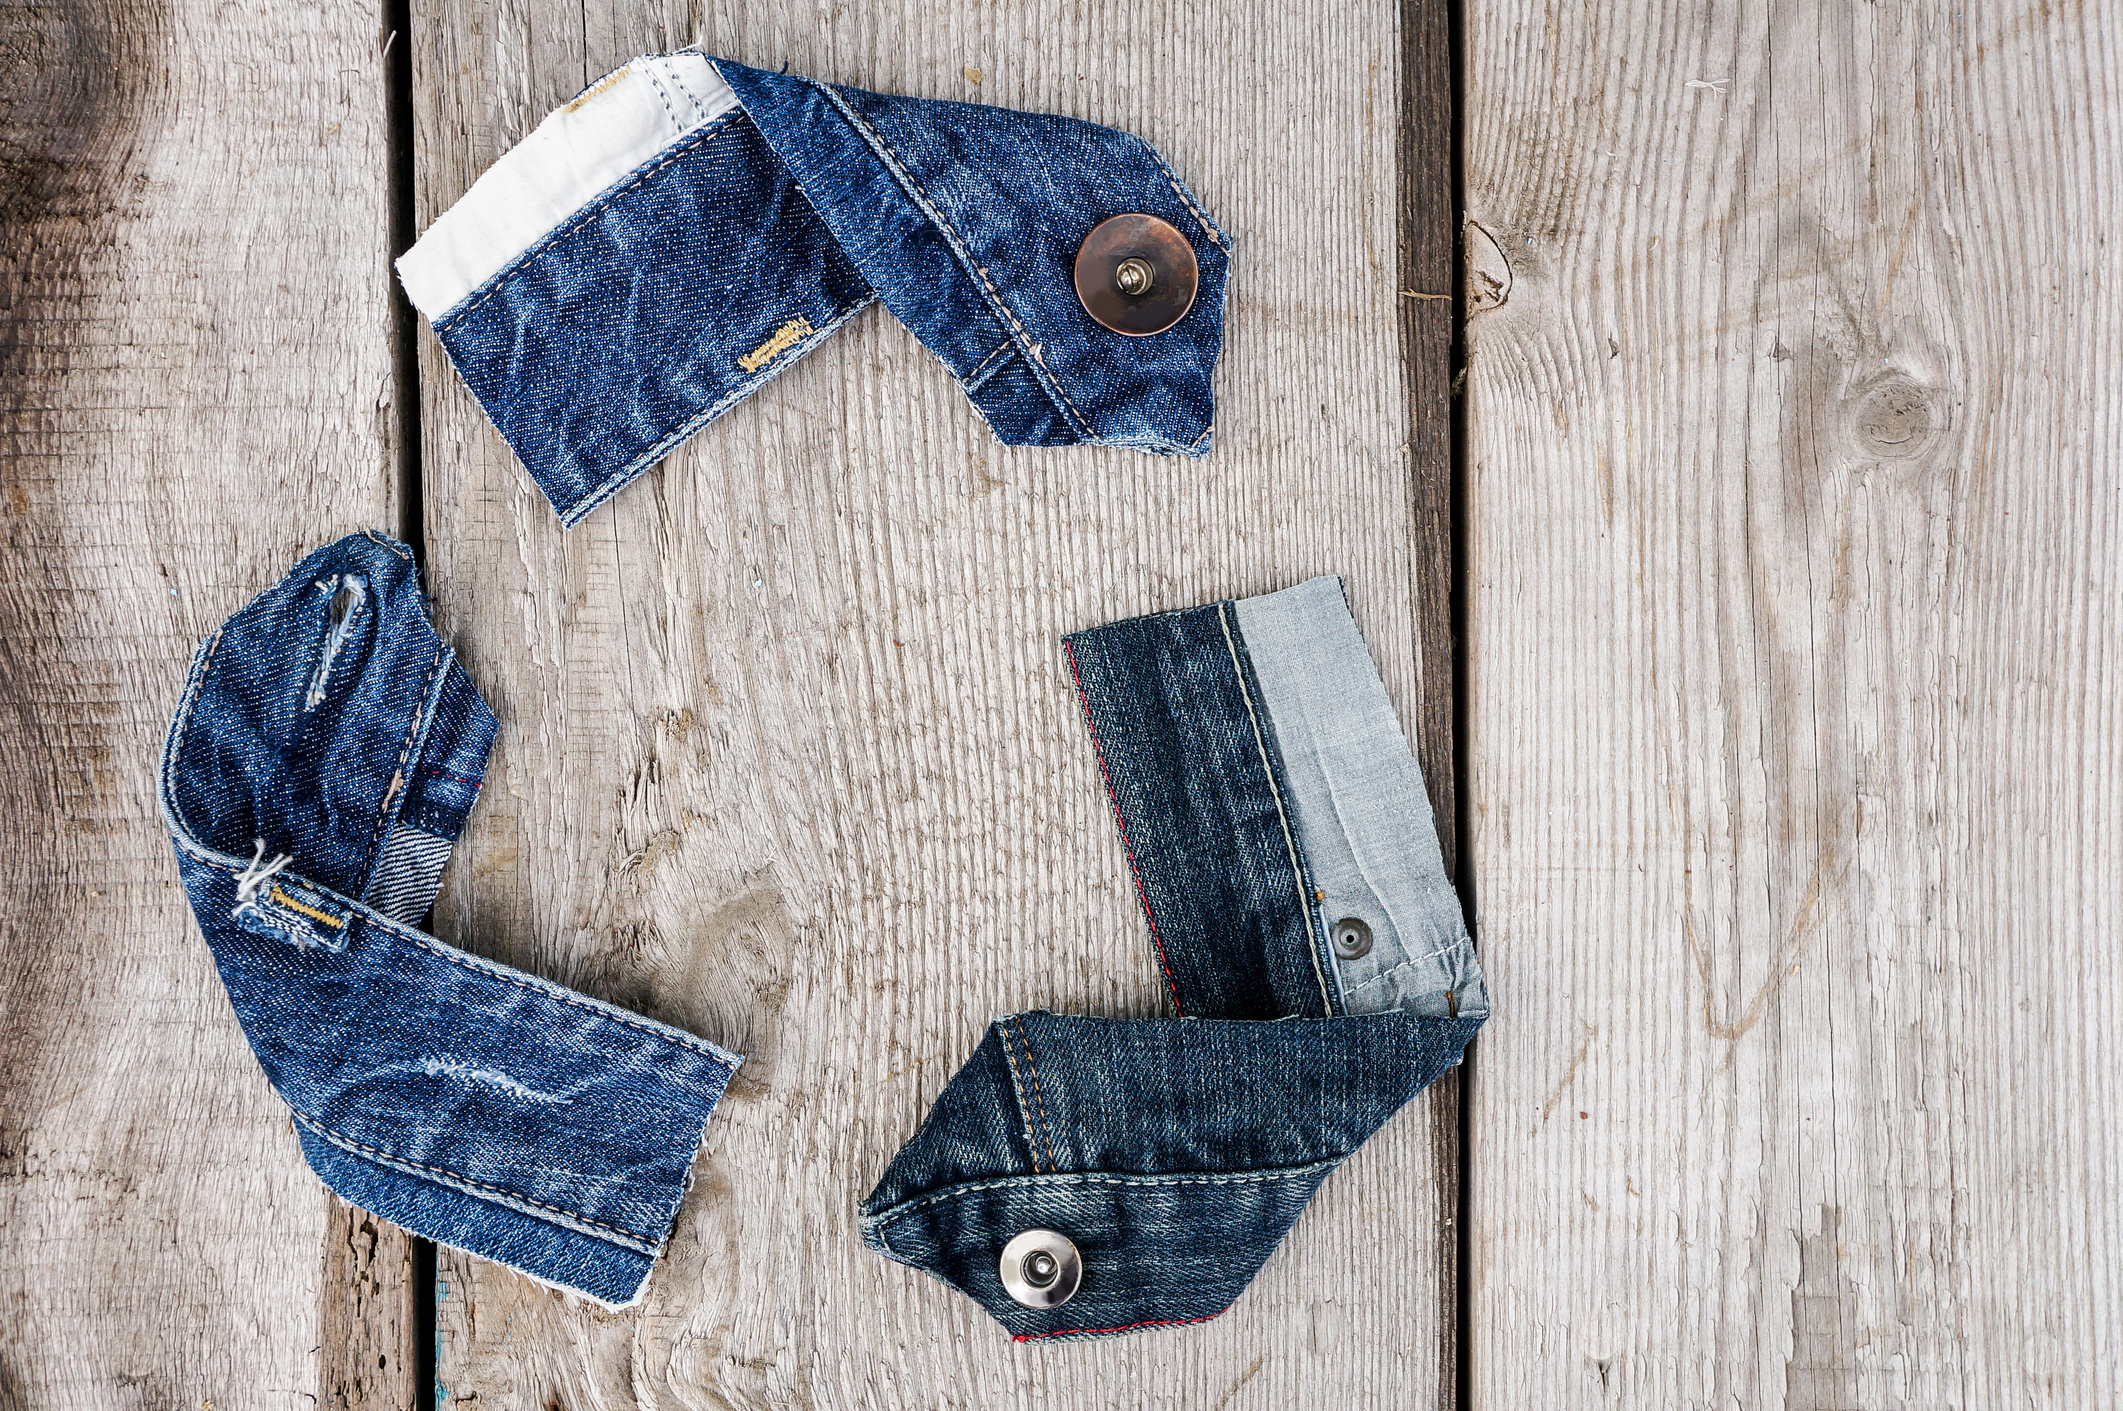 Denim scraps for upcycling arranged into a recycling logo